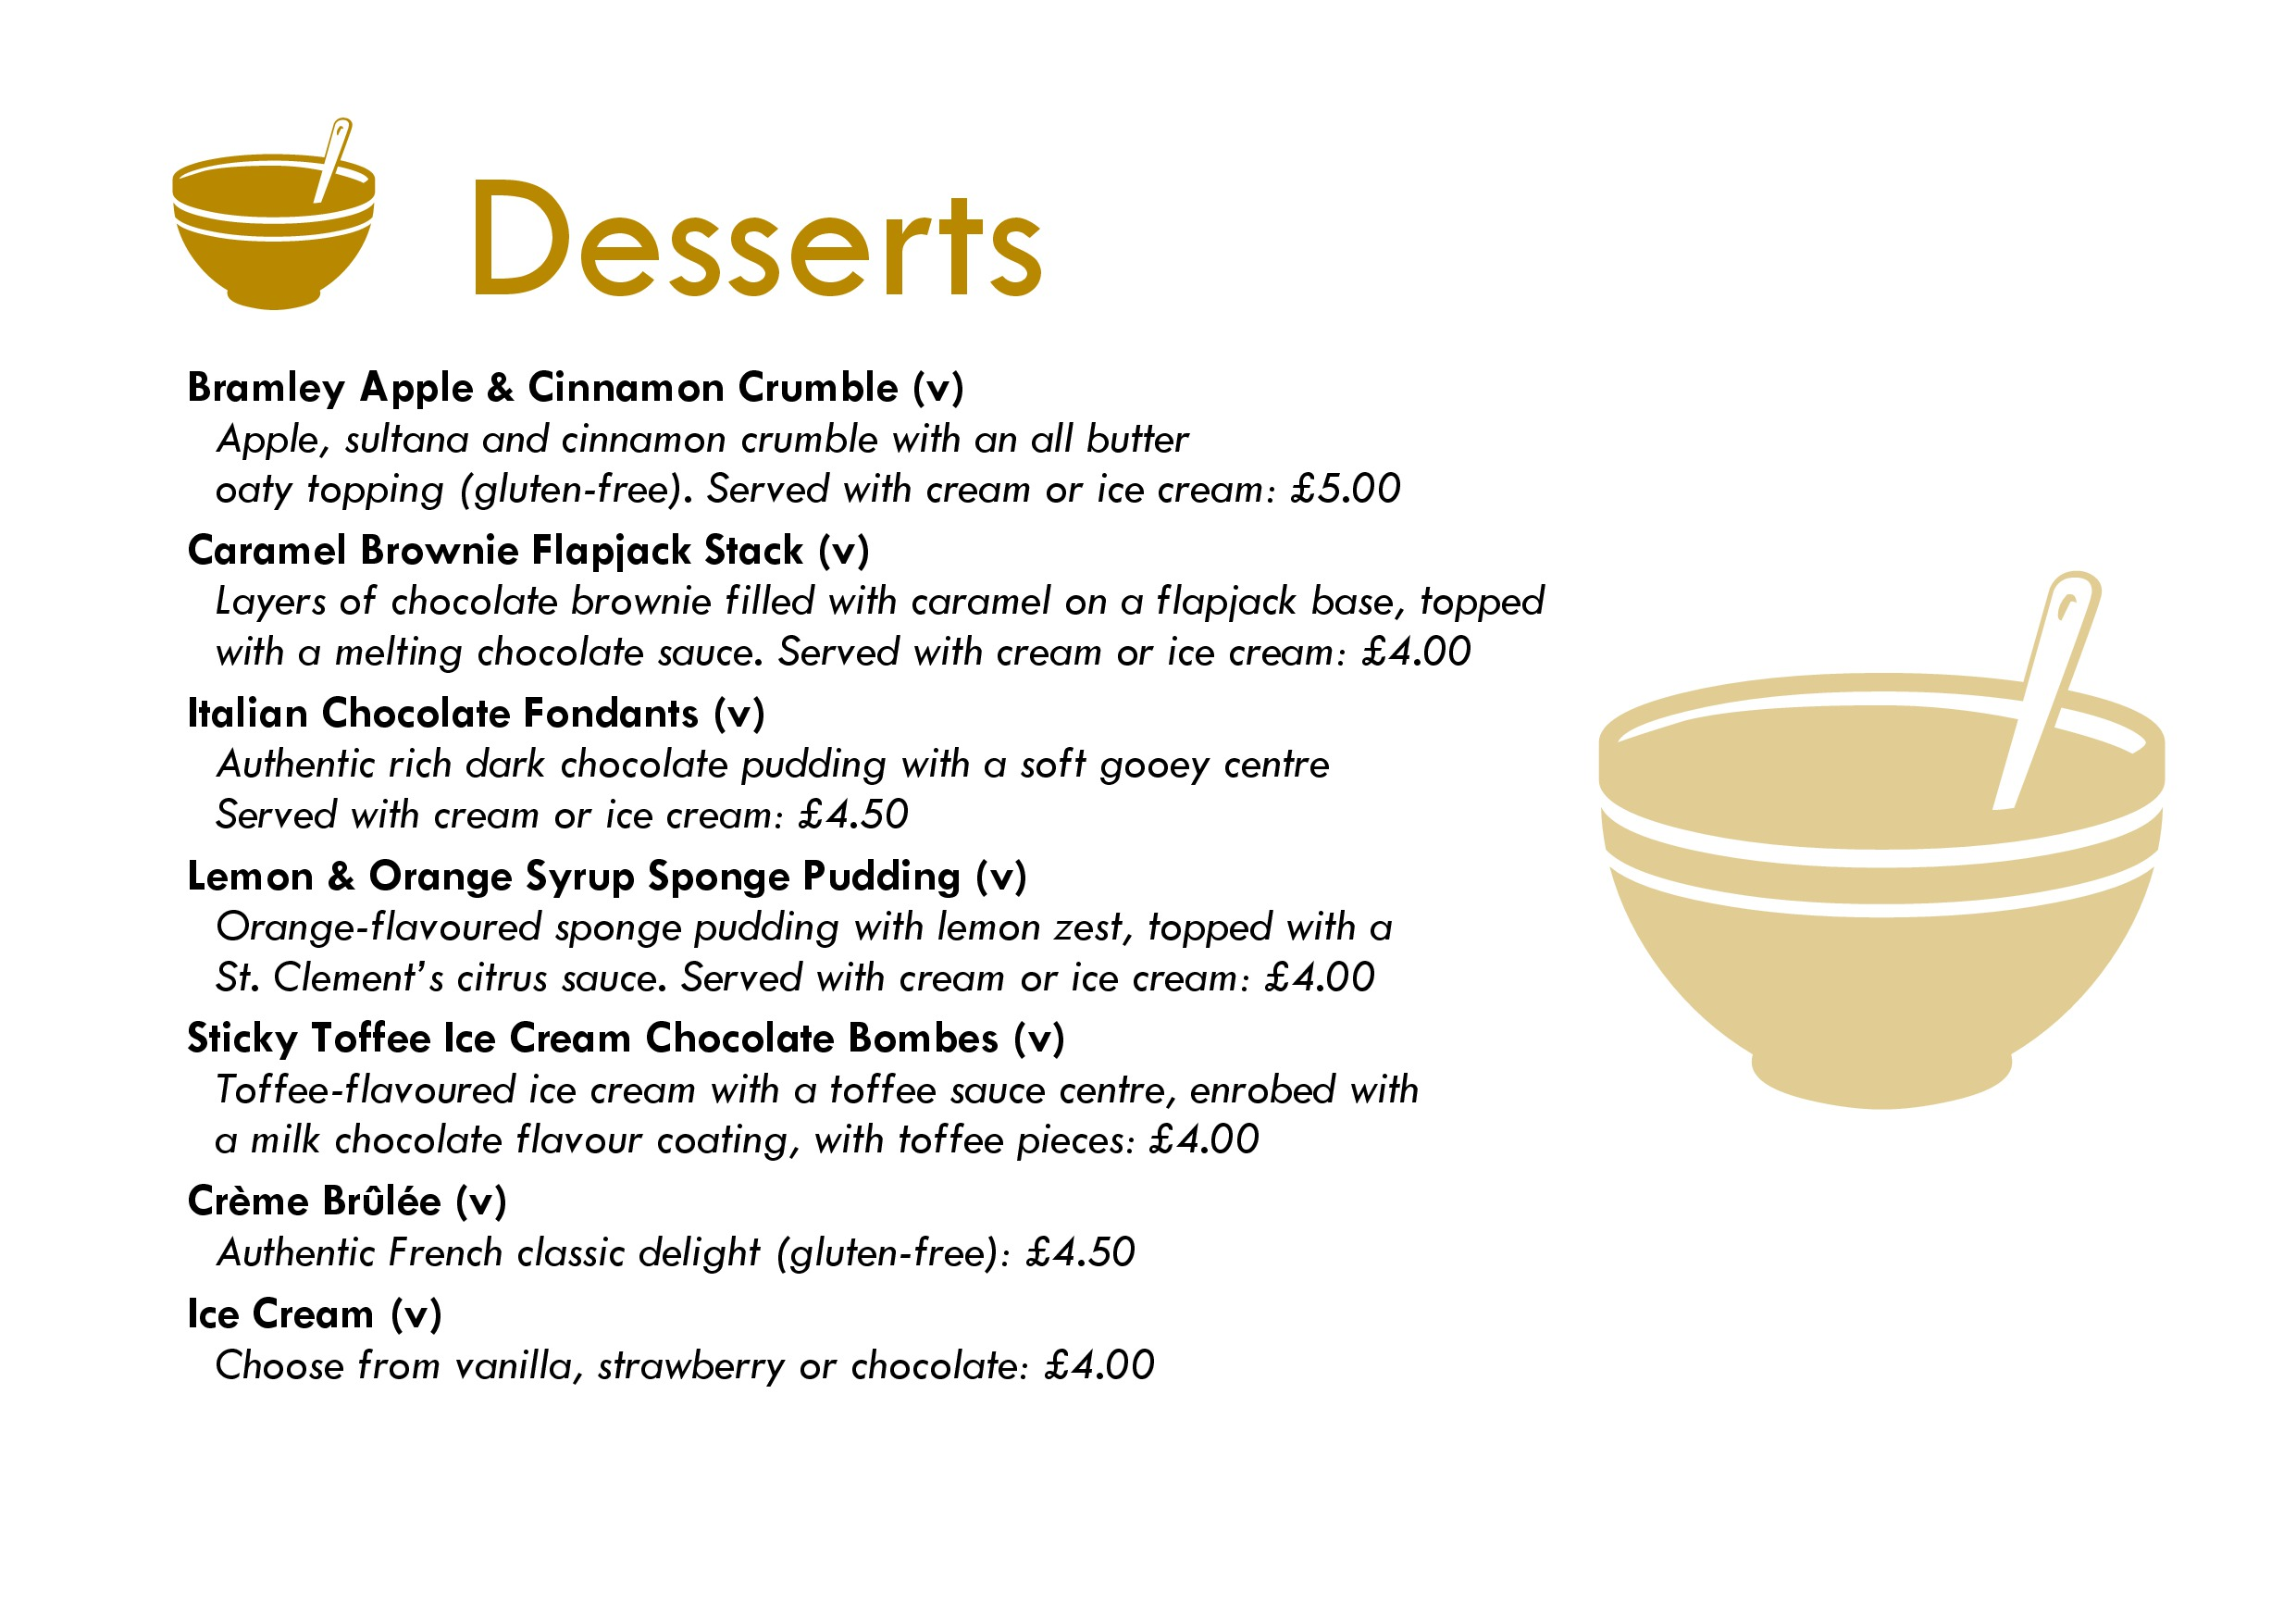 desserts-and-drinks-2-nov-16-page-0